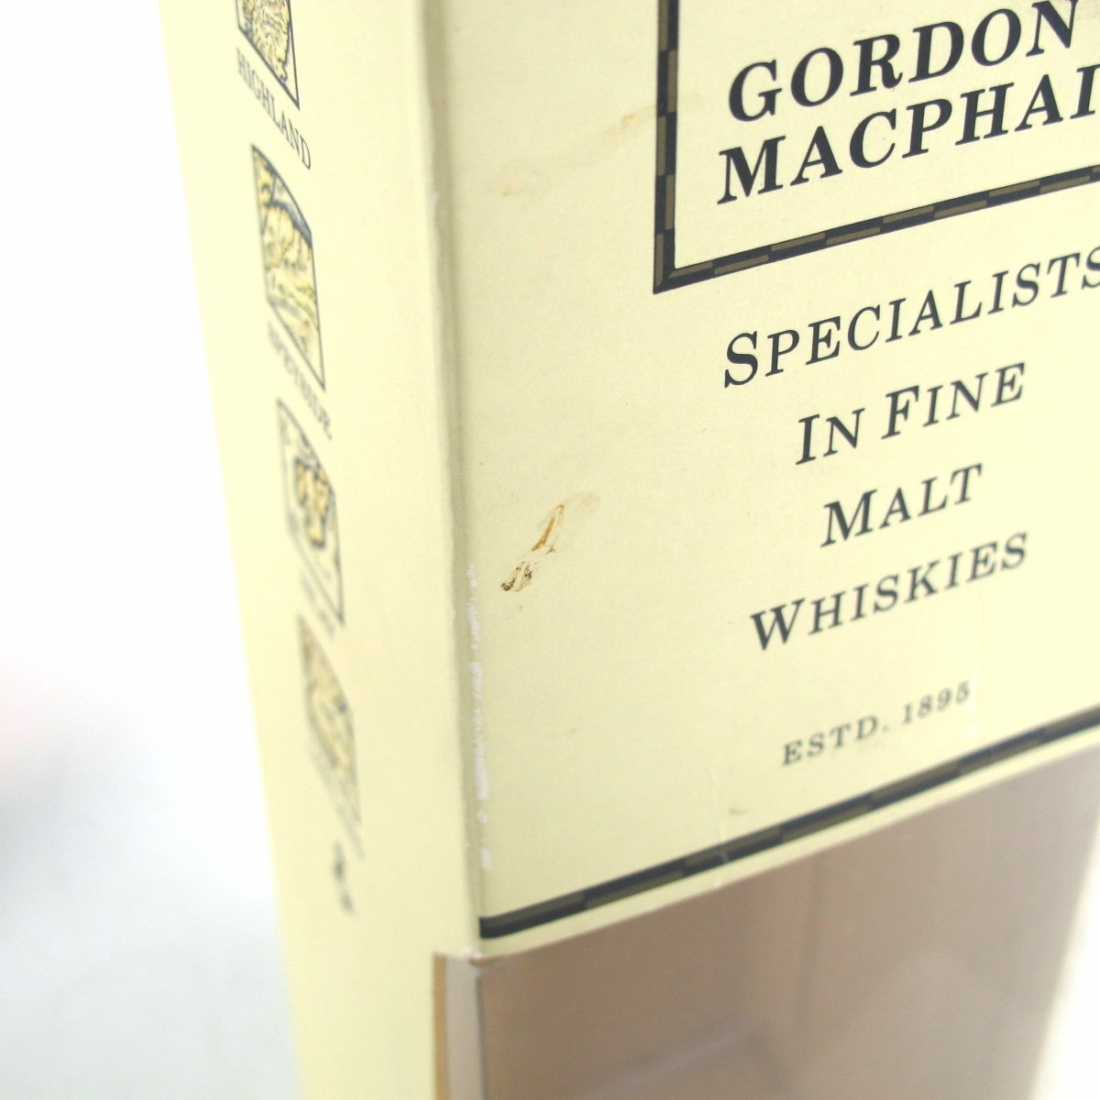 Mosstowie 1975 Gordon and MacPhail